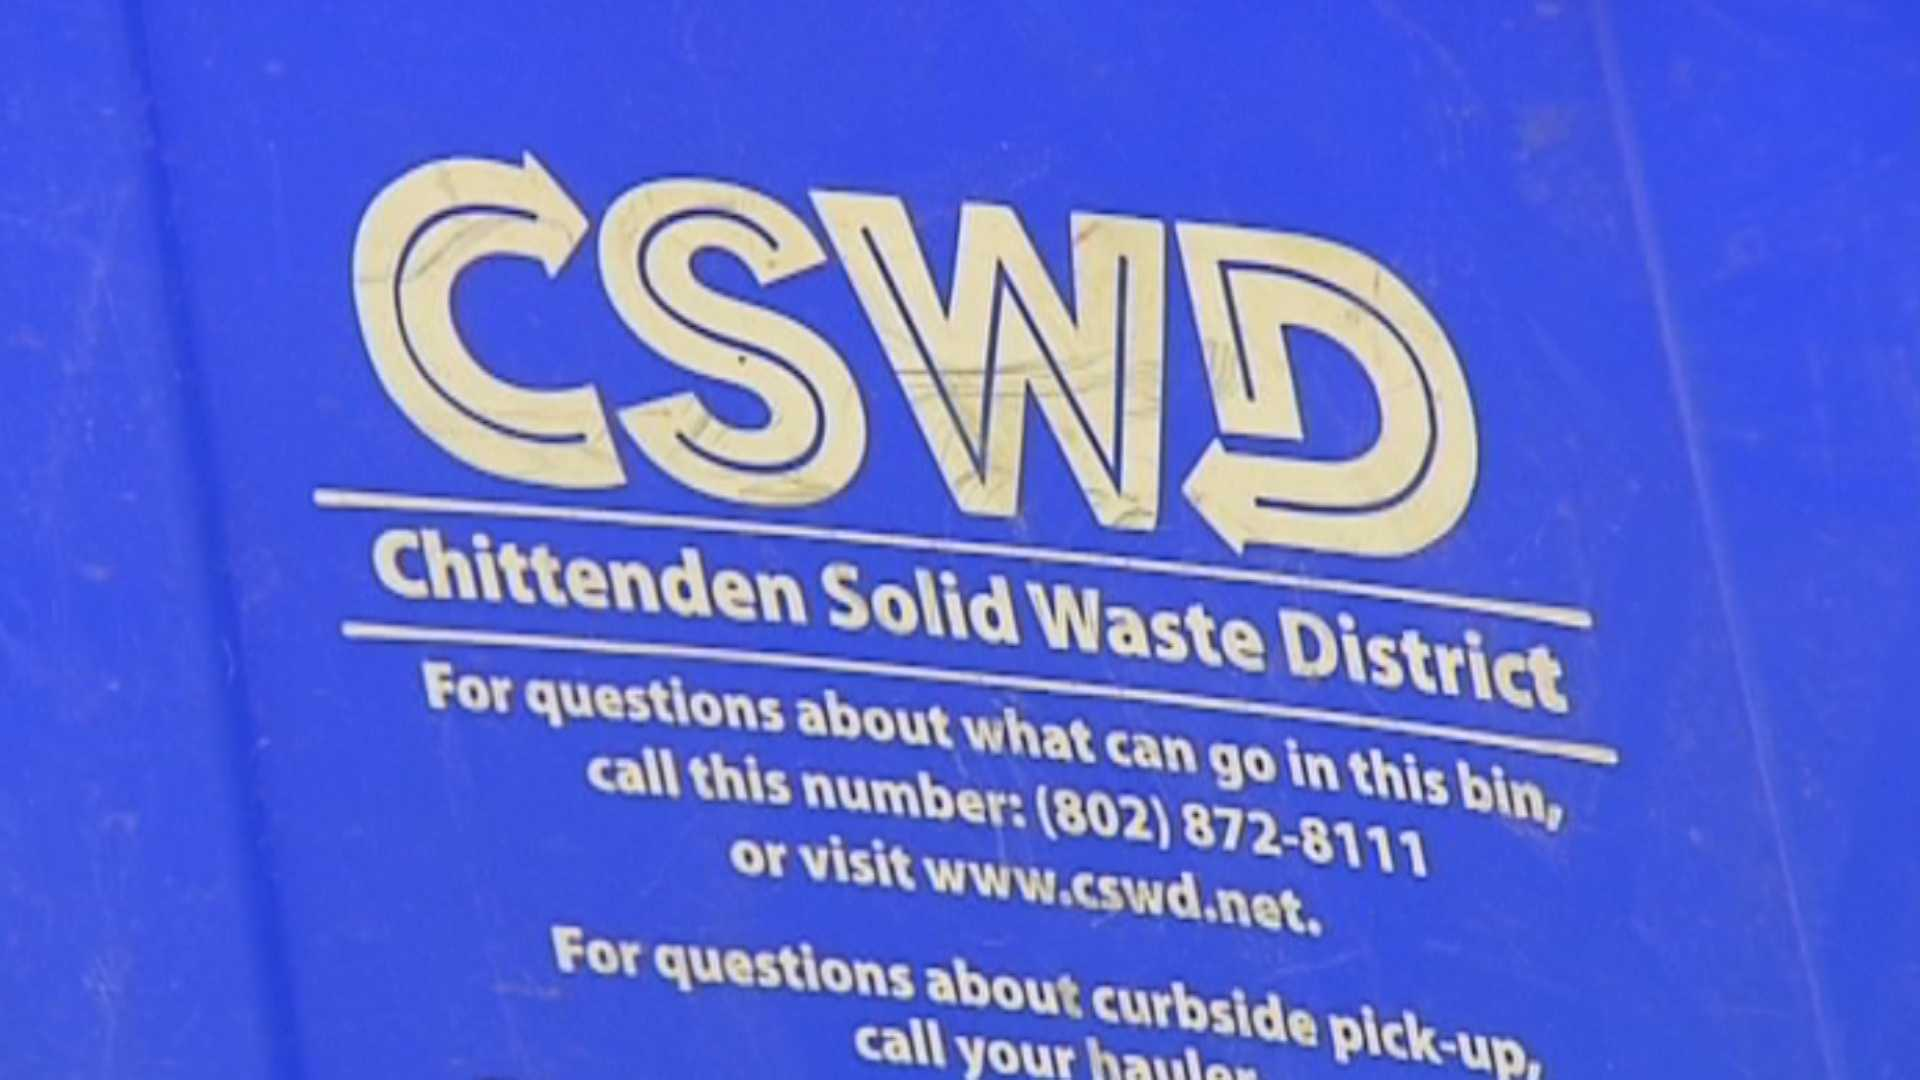 05-28-13 Trash prices in Chittenden County could increase - img